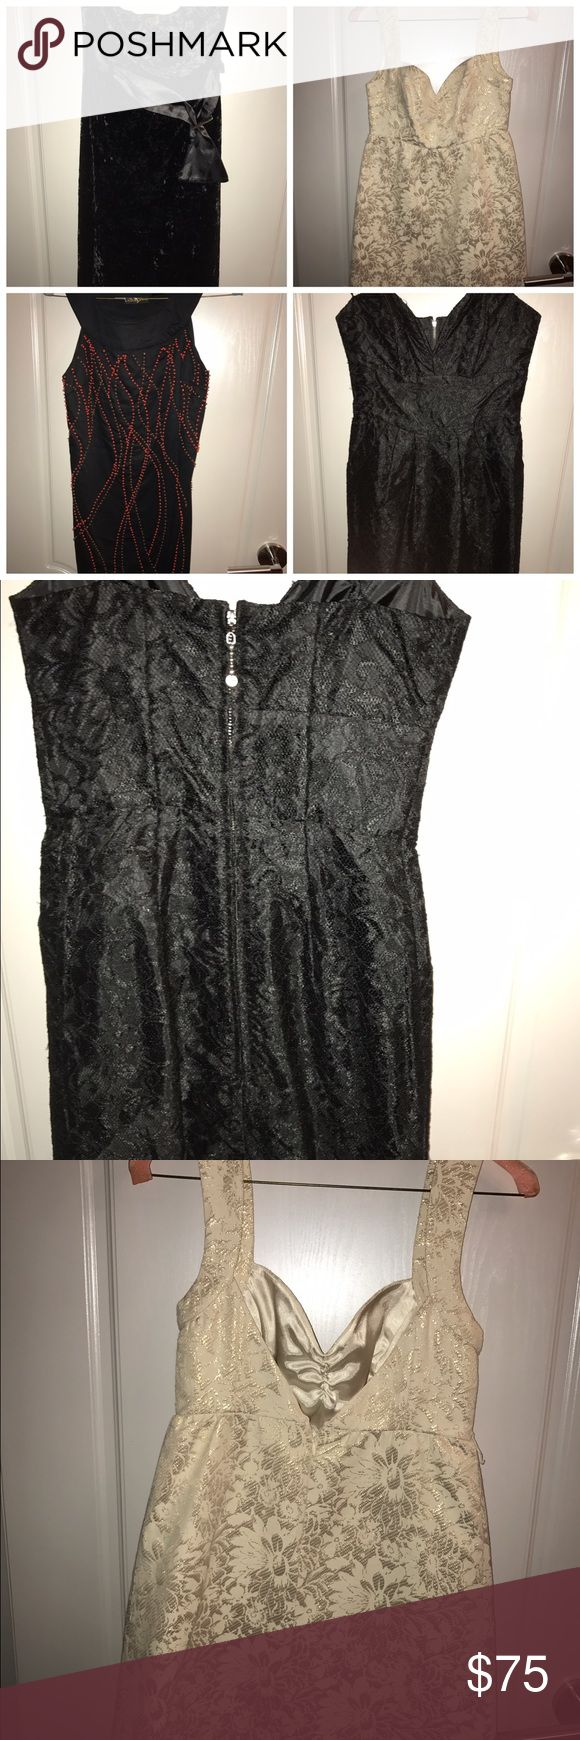 Guess Jeans Lot Of 4 dresses Sz 1 All dresses are perfect for New Year's Eve or any special occasion.  Dress 1: black lace Strapless Mini dress with sweetheart neckline and front pockets.  Dress 2: black velvet Strapless Mini dress with sash.  Dress 3: black Mini dress with red and orange front beading  Dress 4: beige gold dress with sweetheart neckline and broad straps. Check out my other Bebe and GUESS items. Guess Dresses